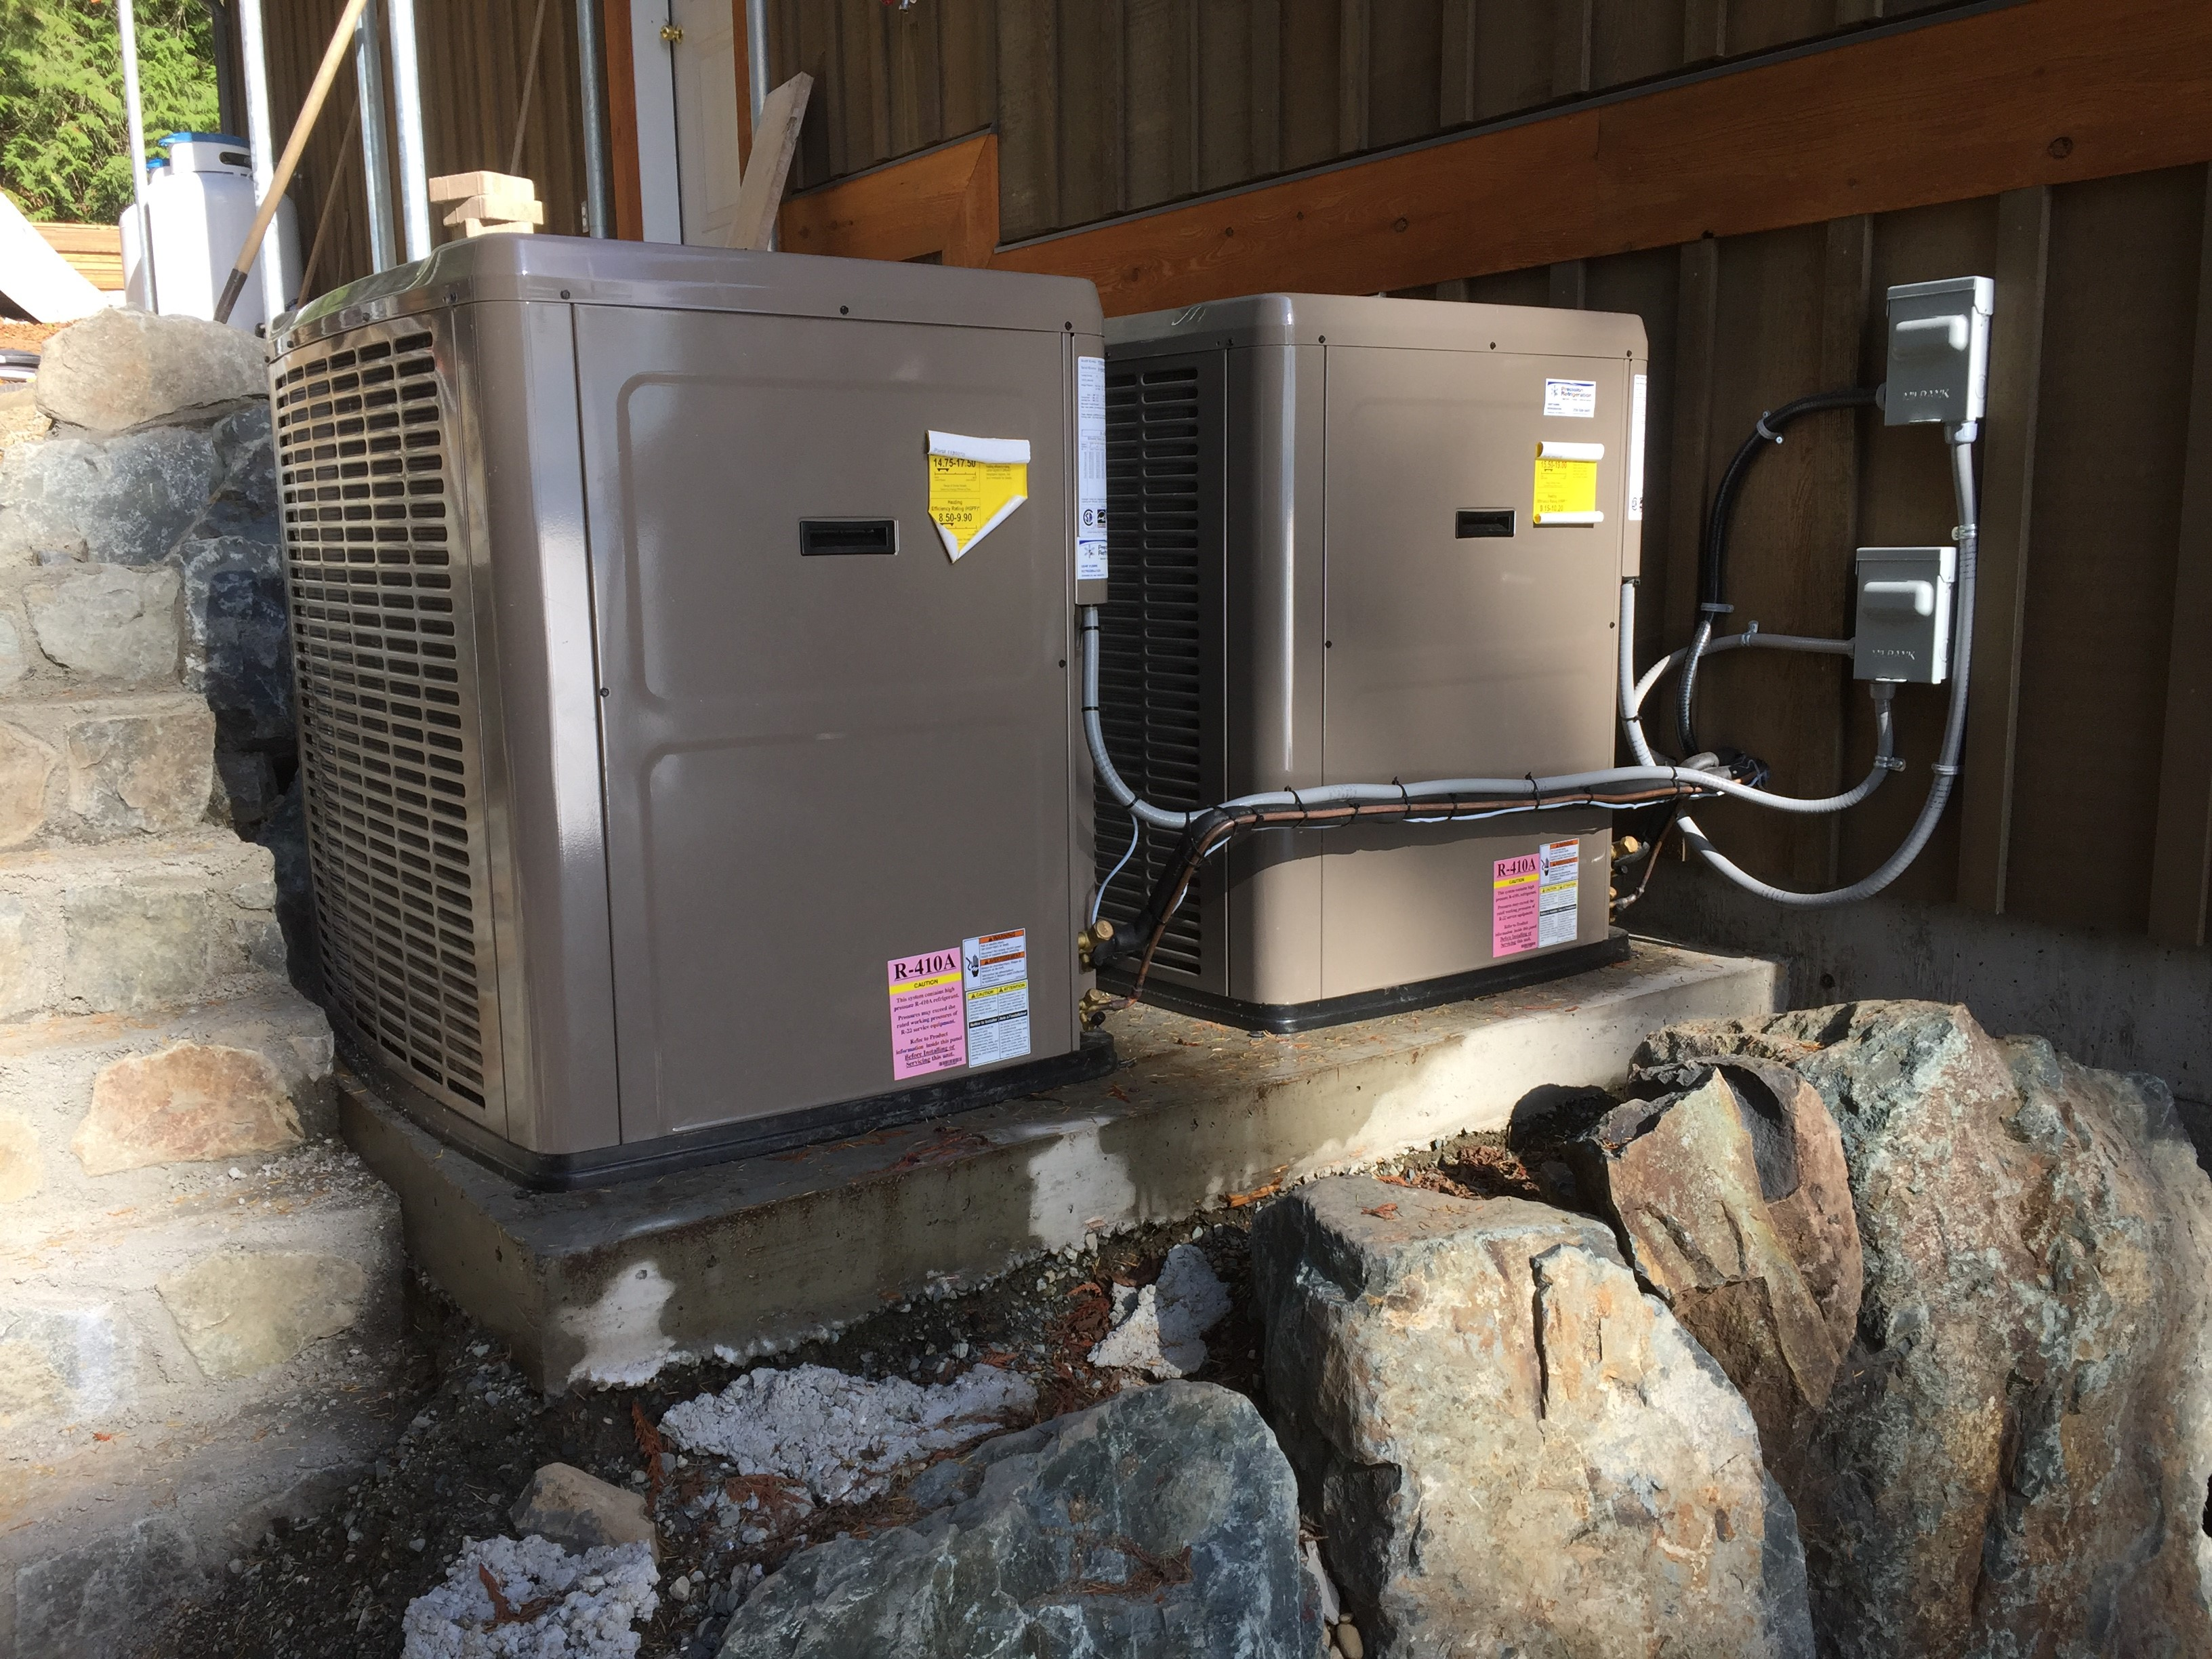 Residential heat pump systems and ducting